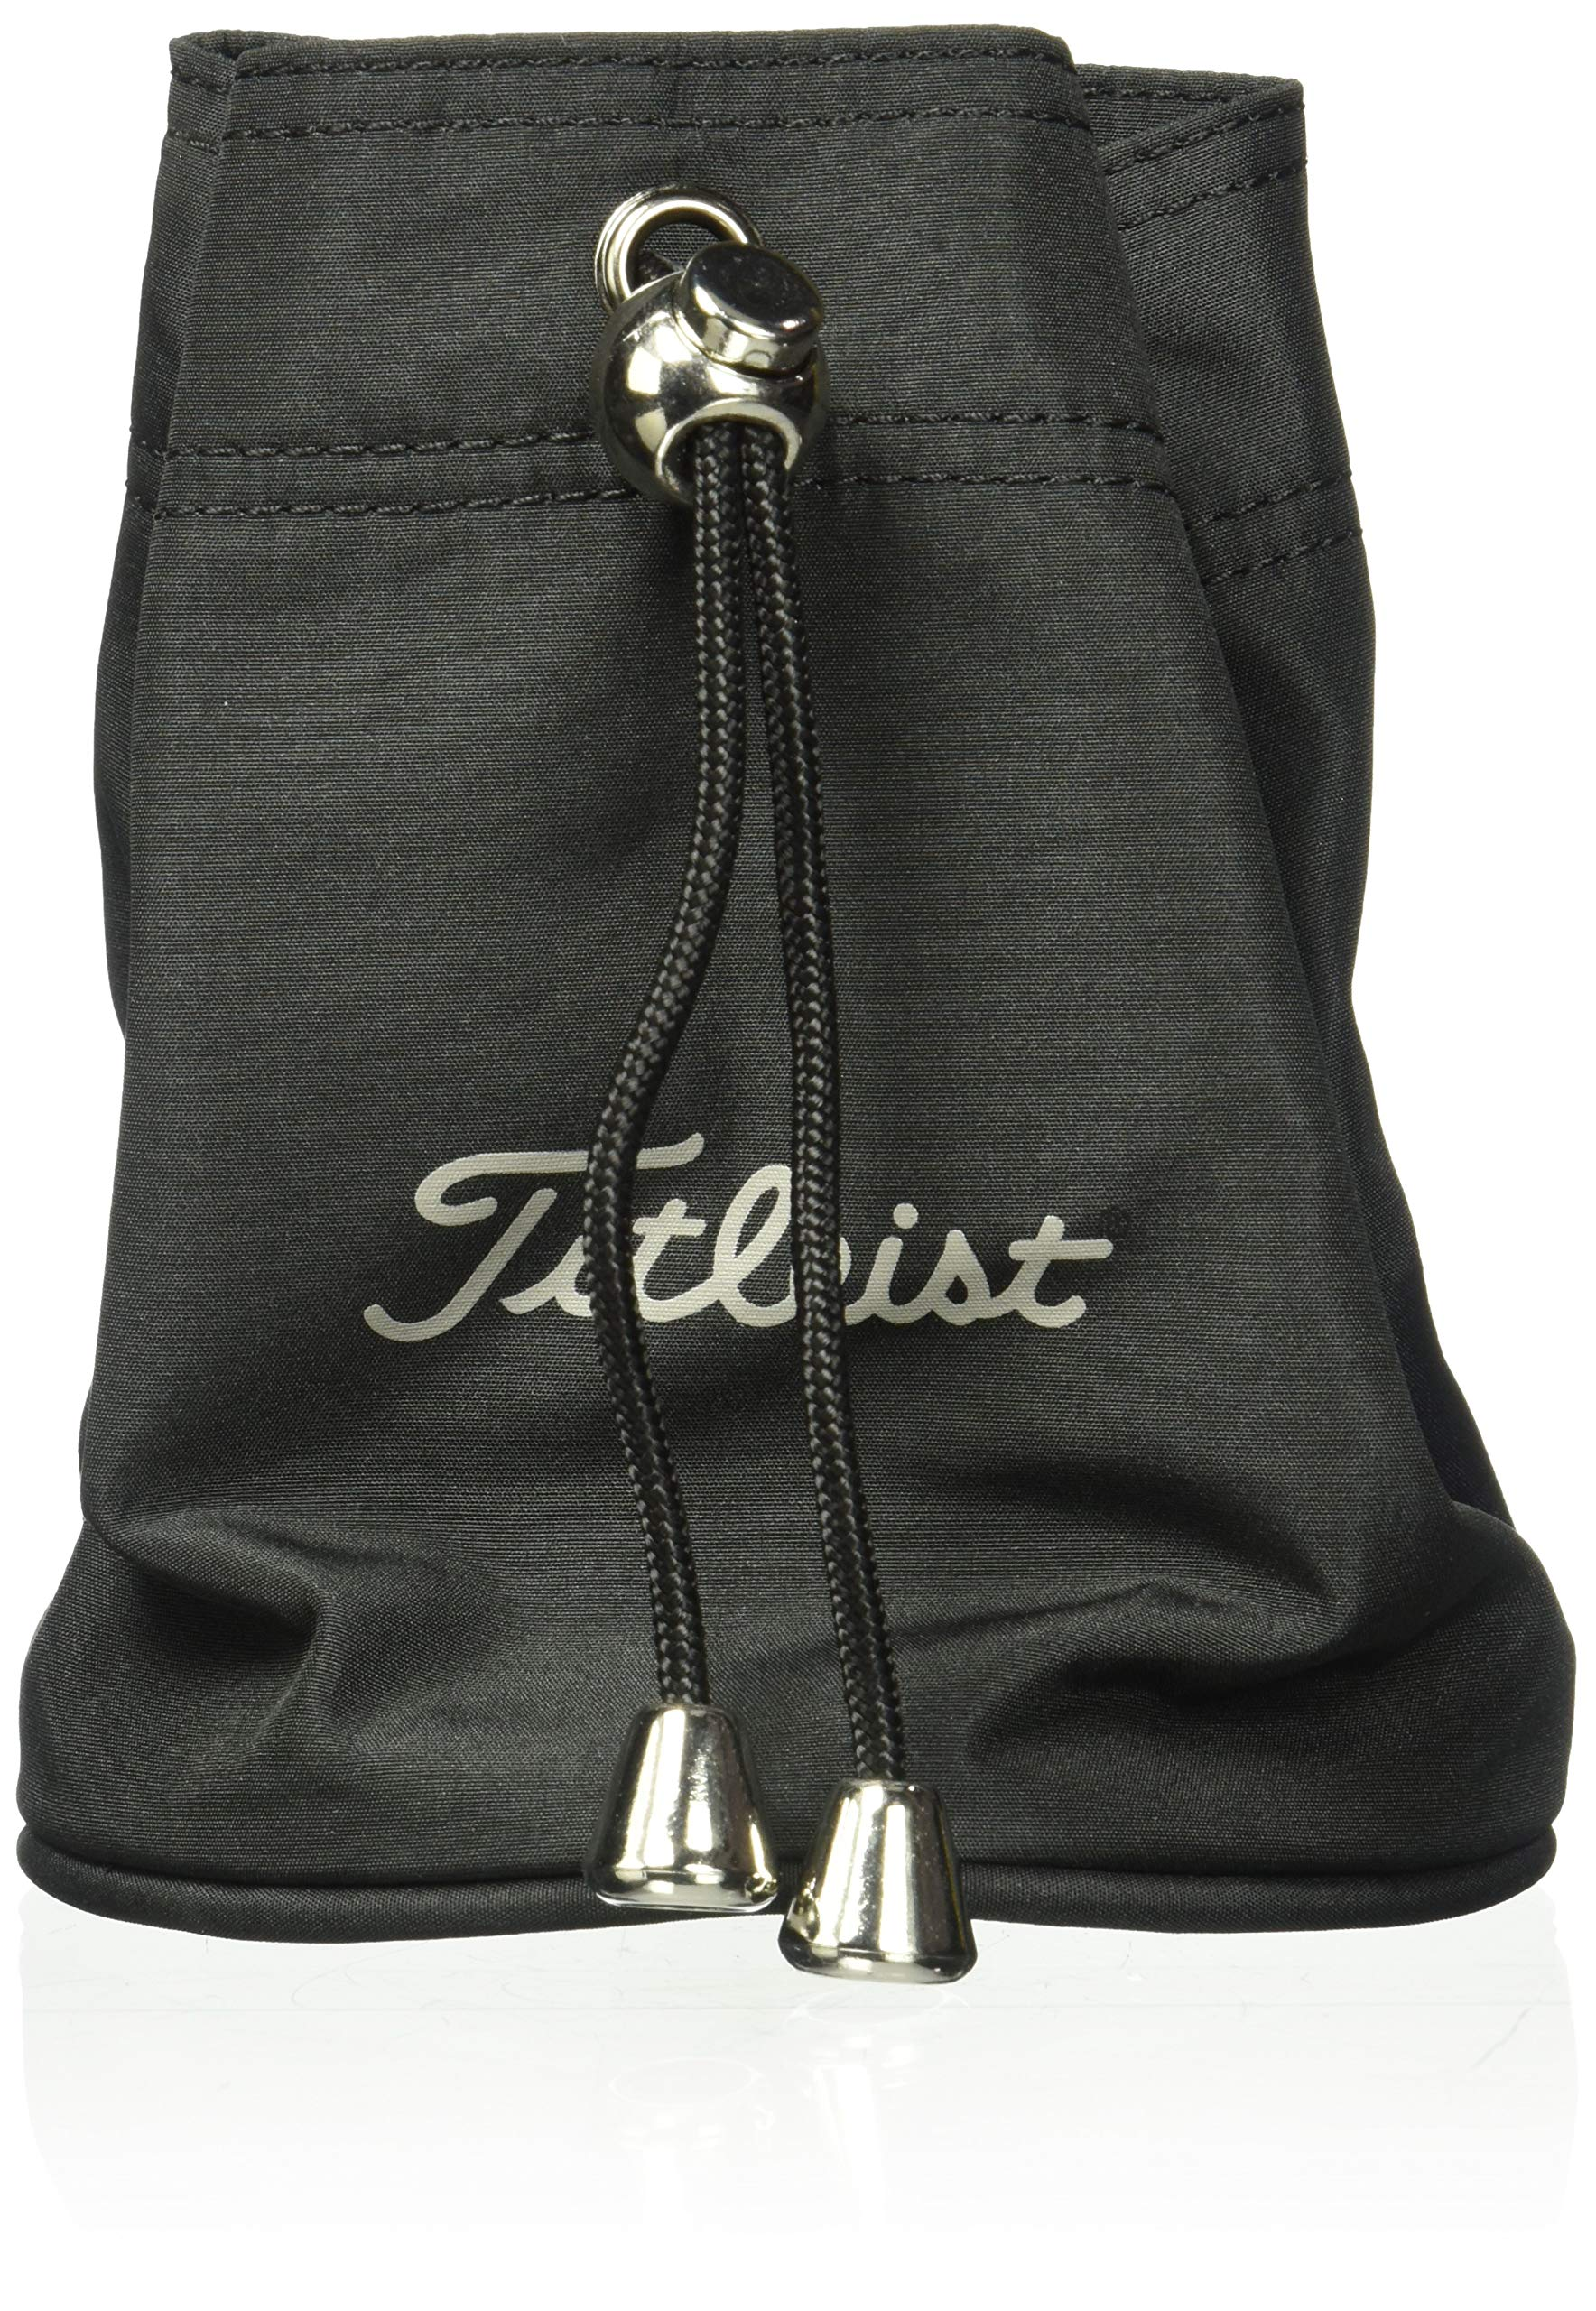 Titleist Club Valuables Pouch by Titleist